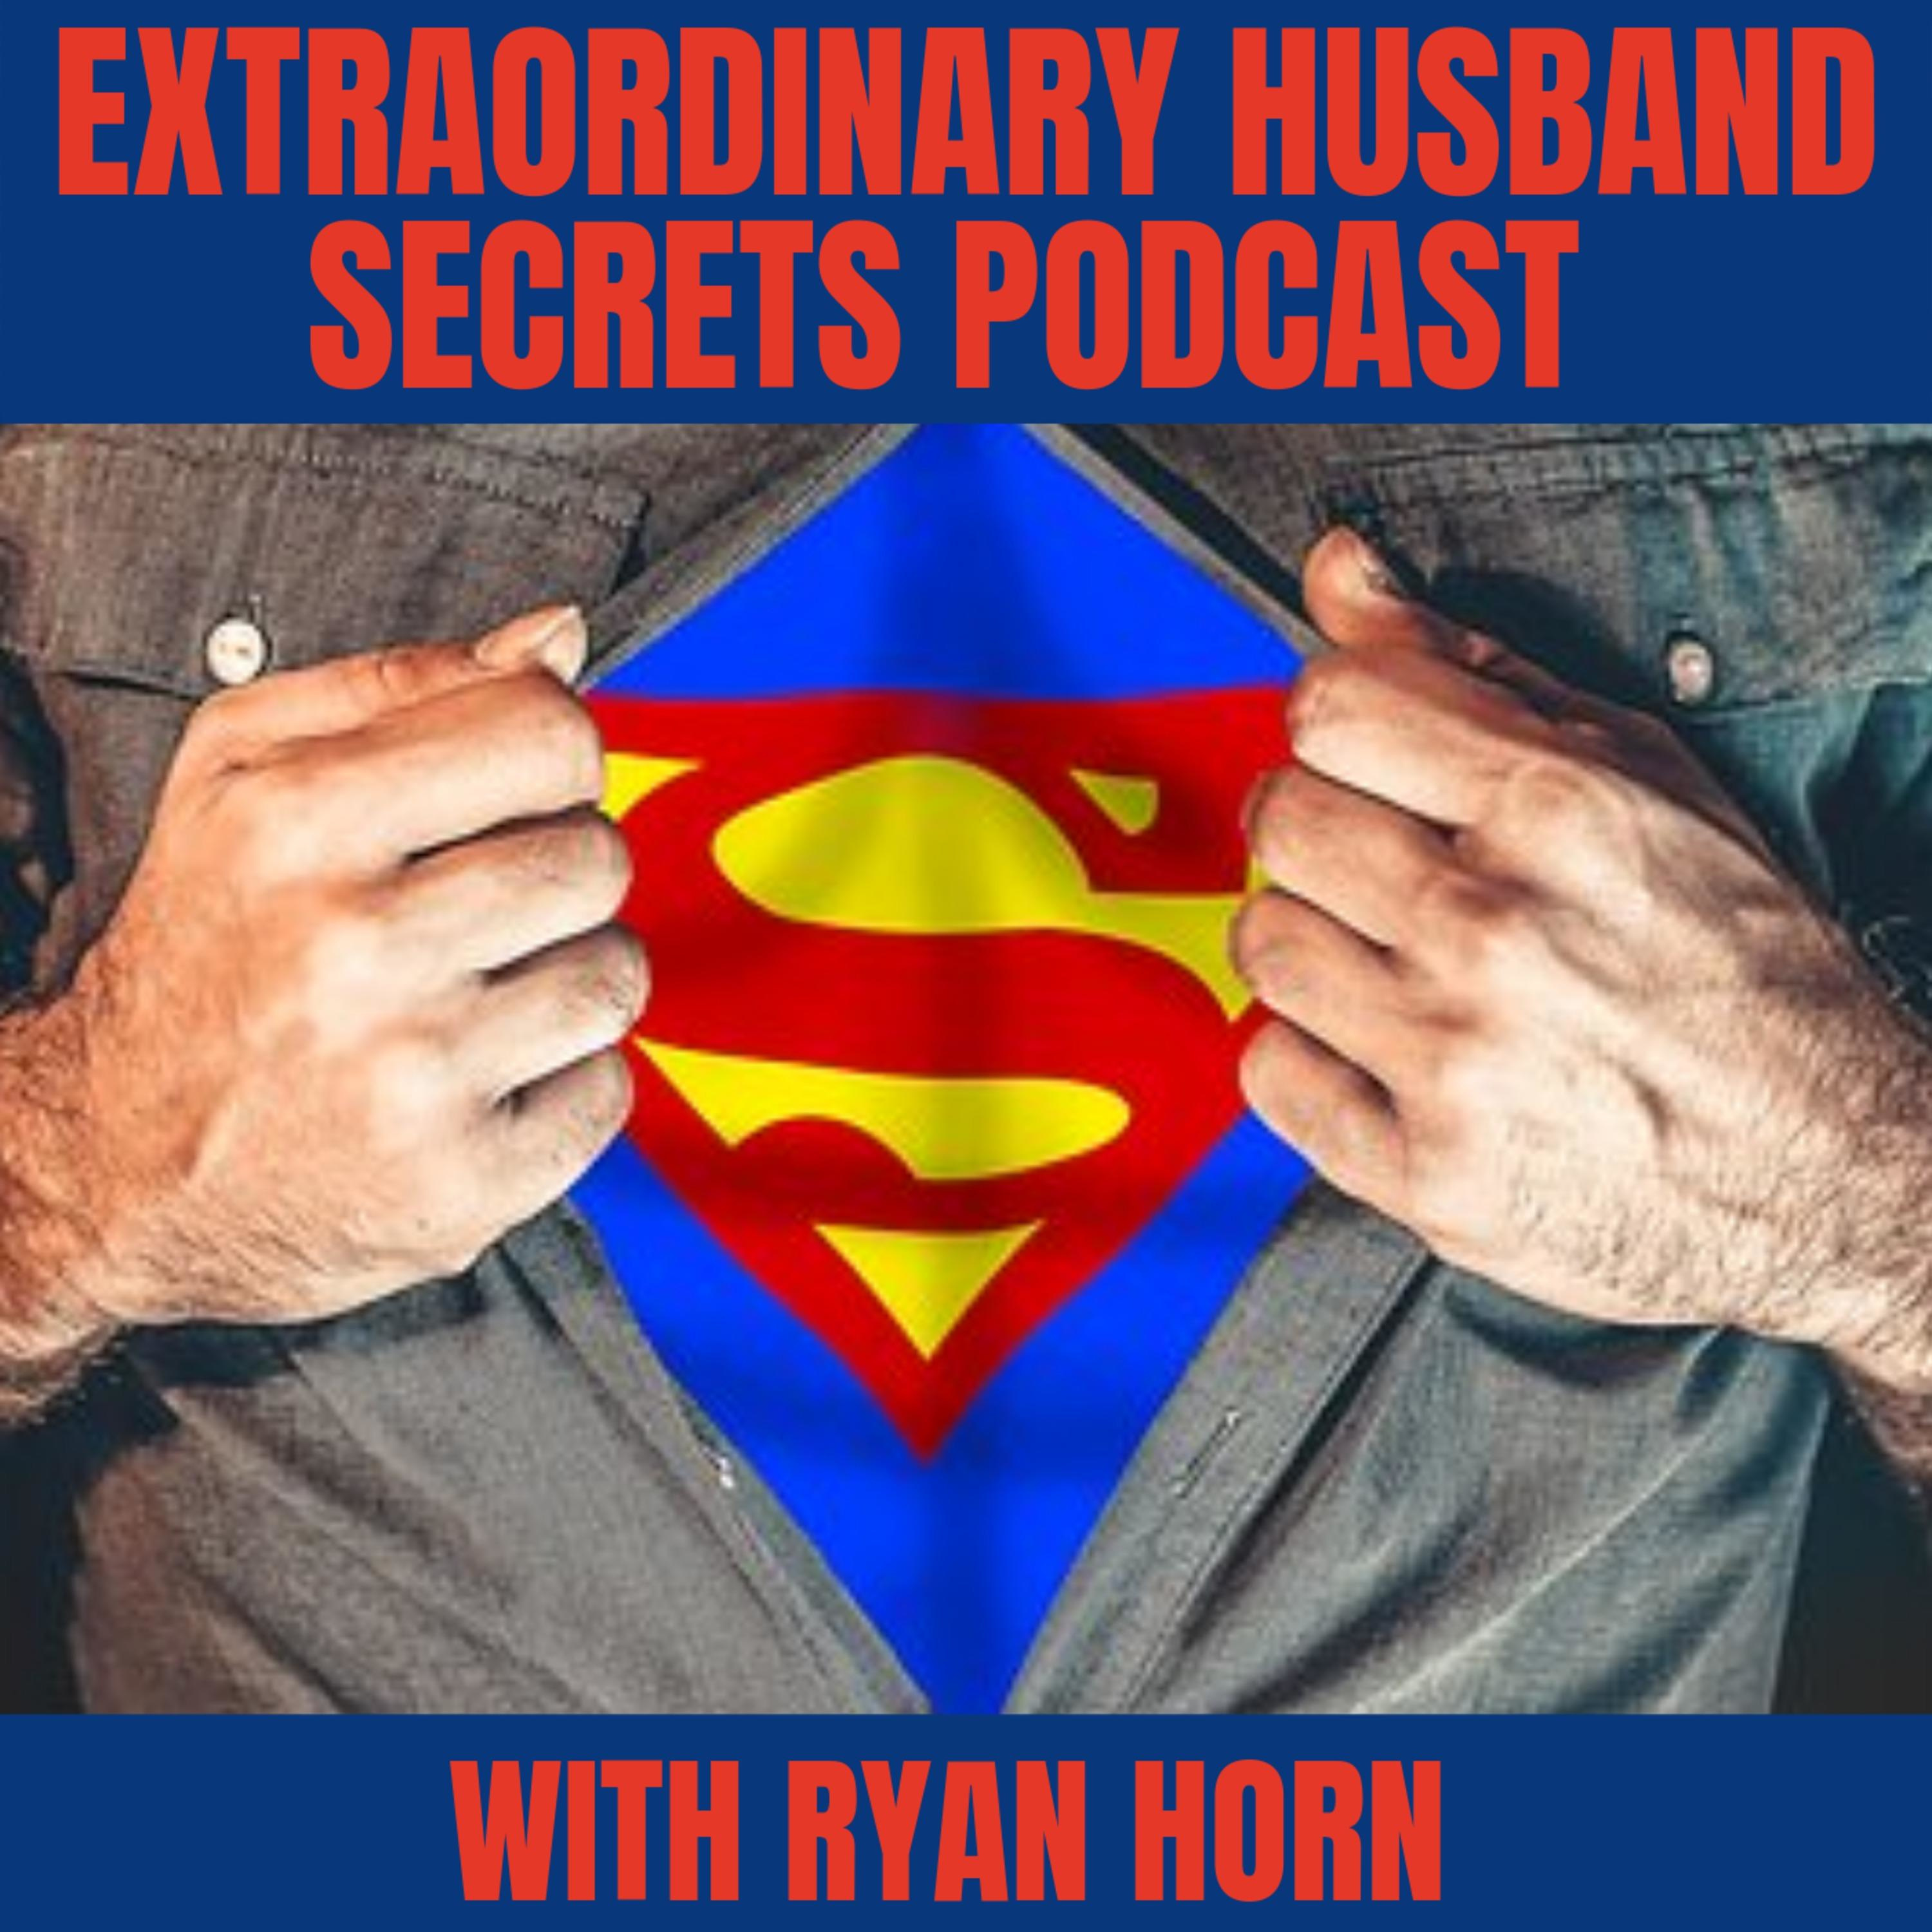 048: The Key To A Great Marriage